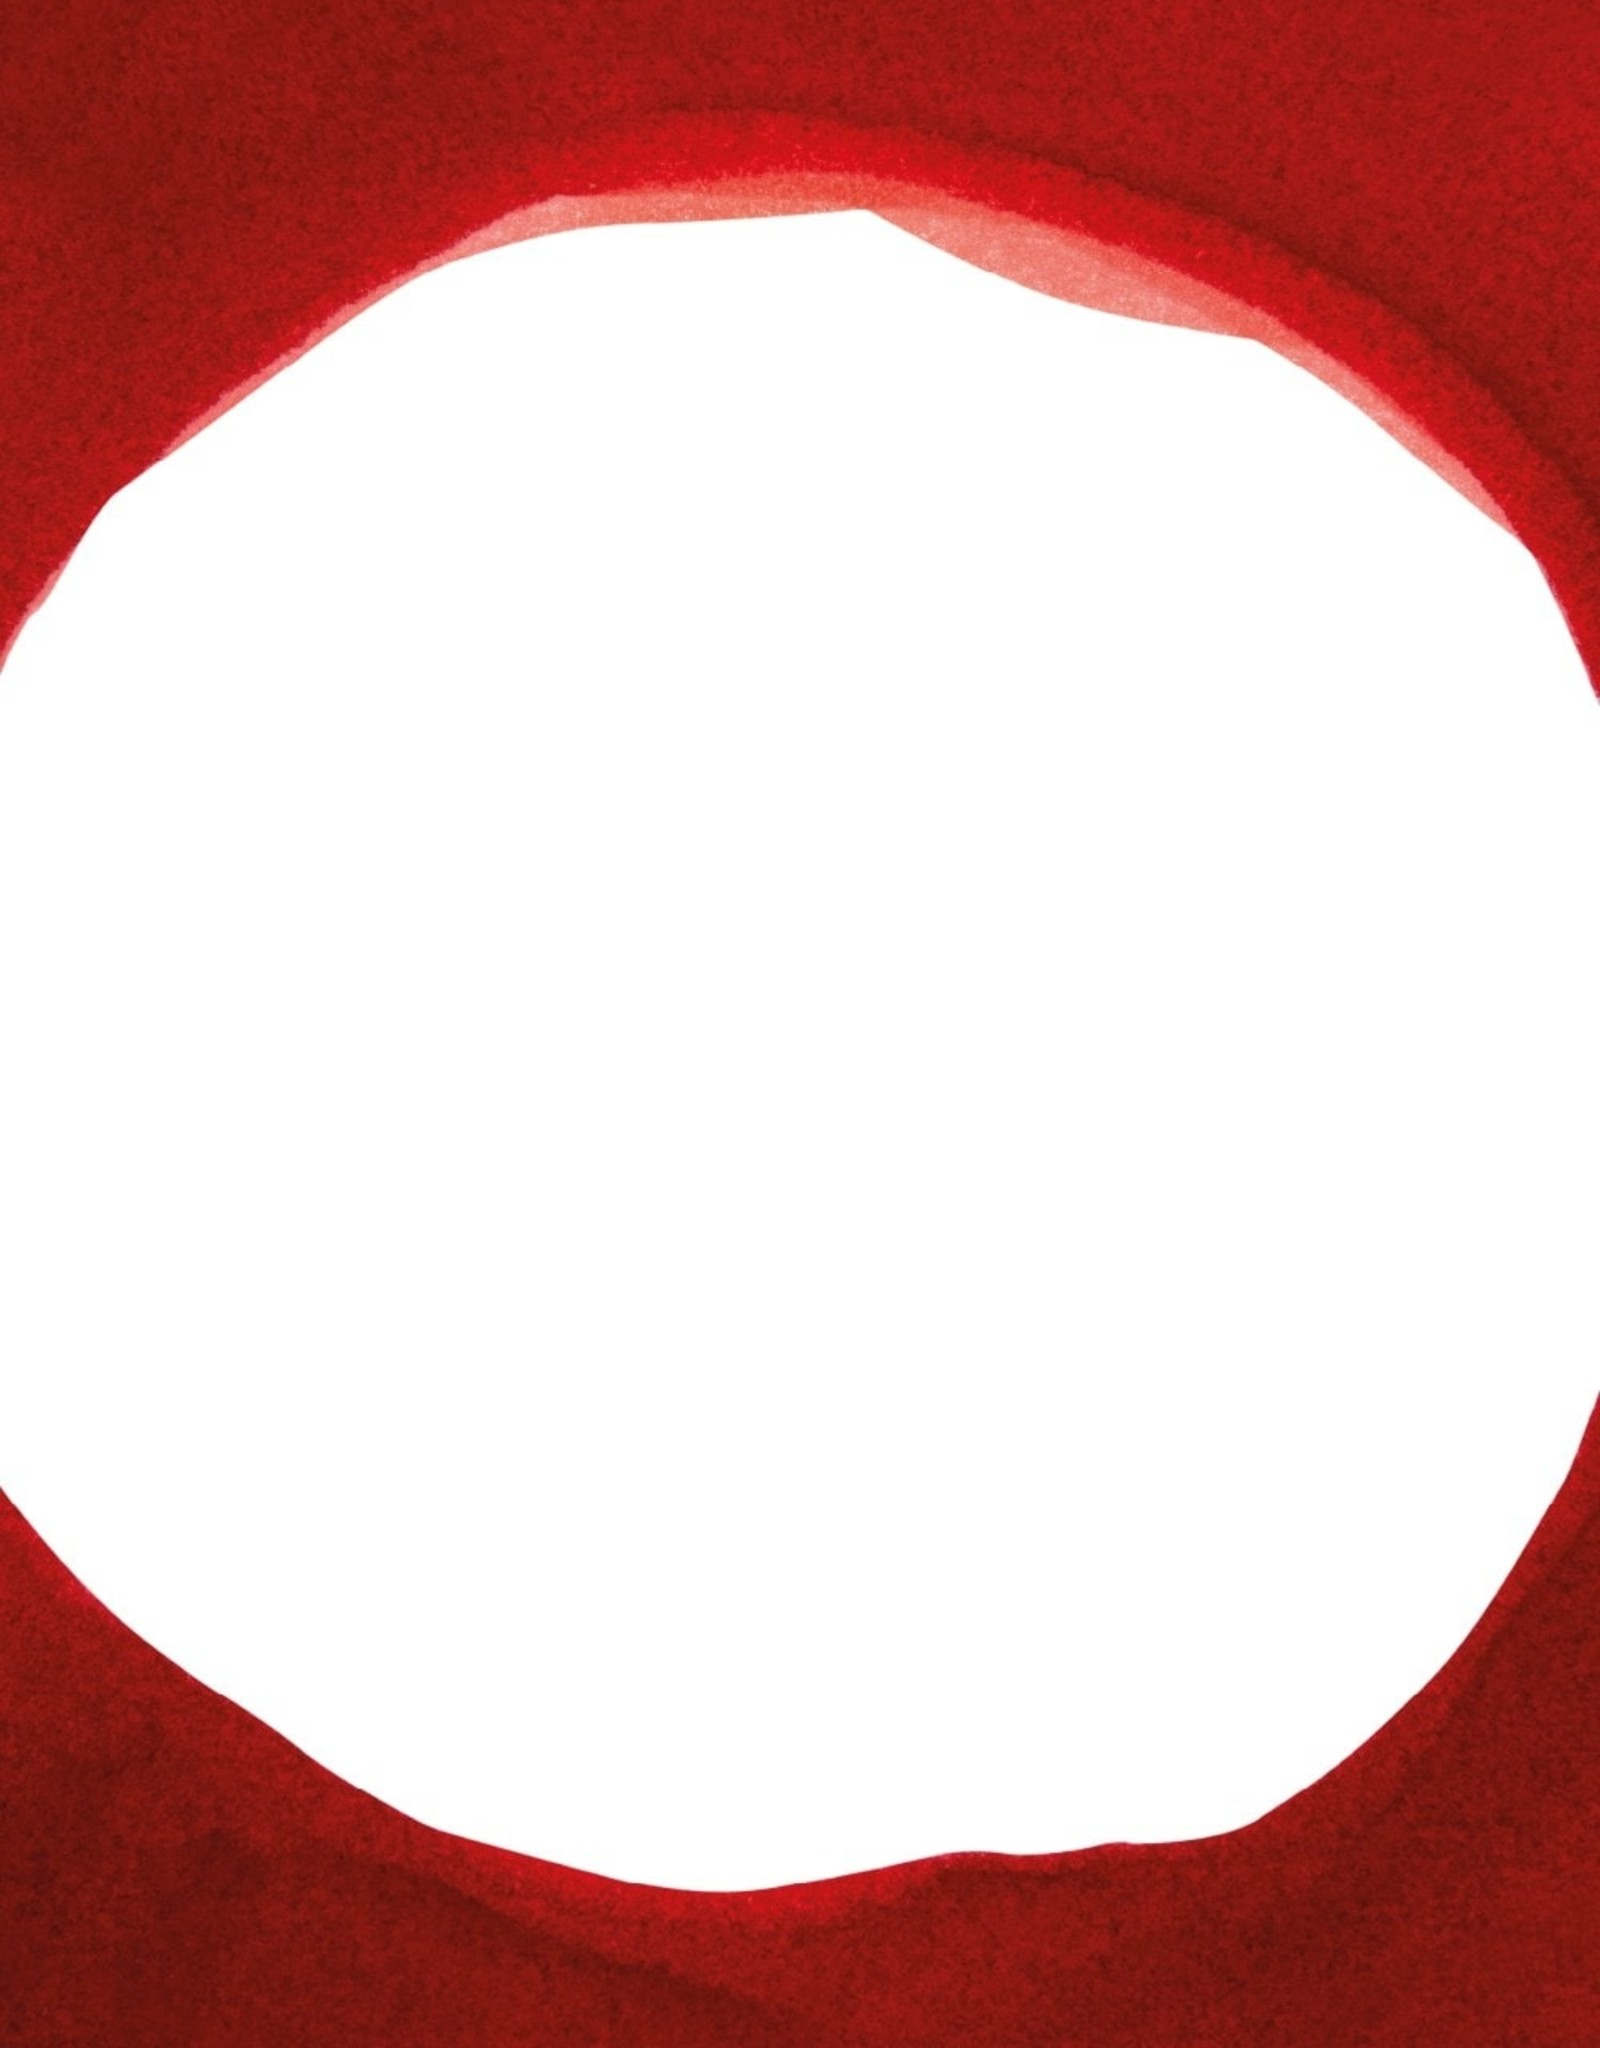 Paper Collective Paper Collective Poster Norm Architects Enso Red III 30x40cm